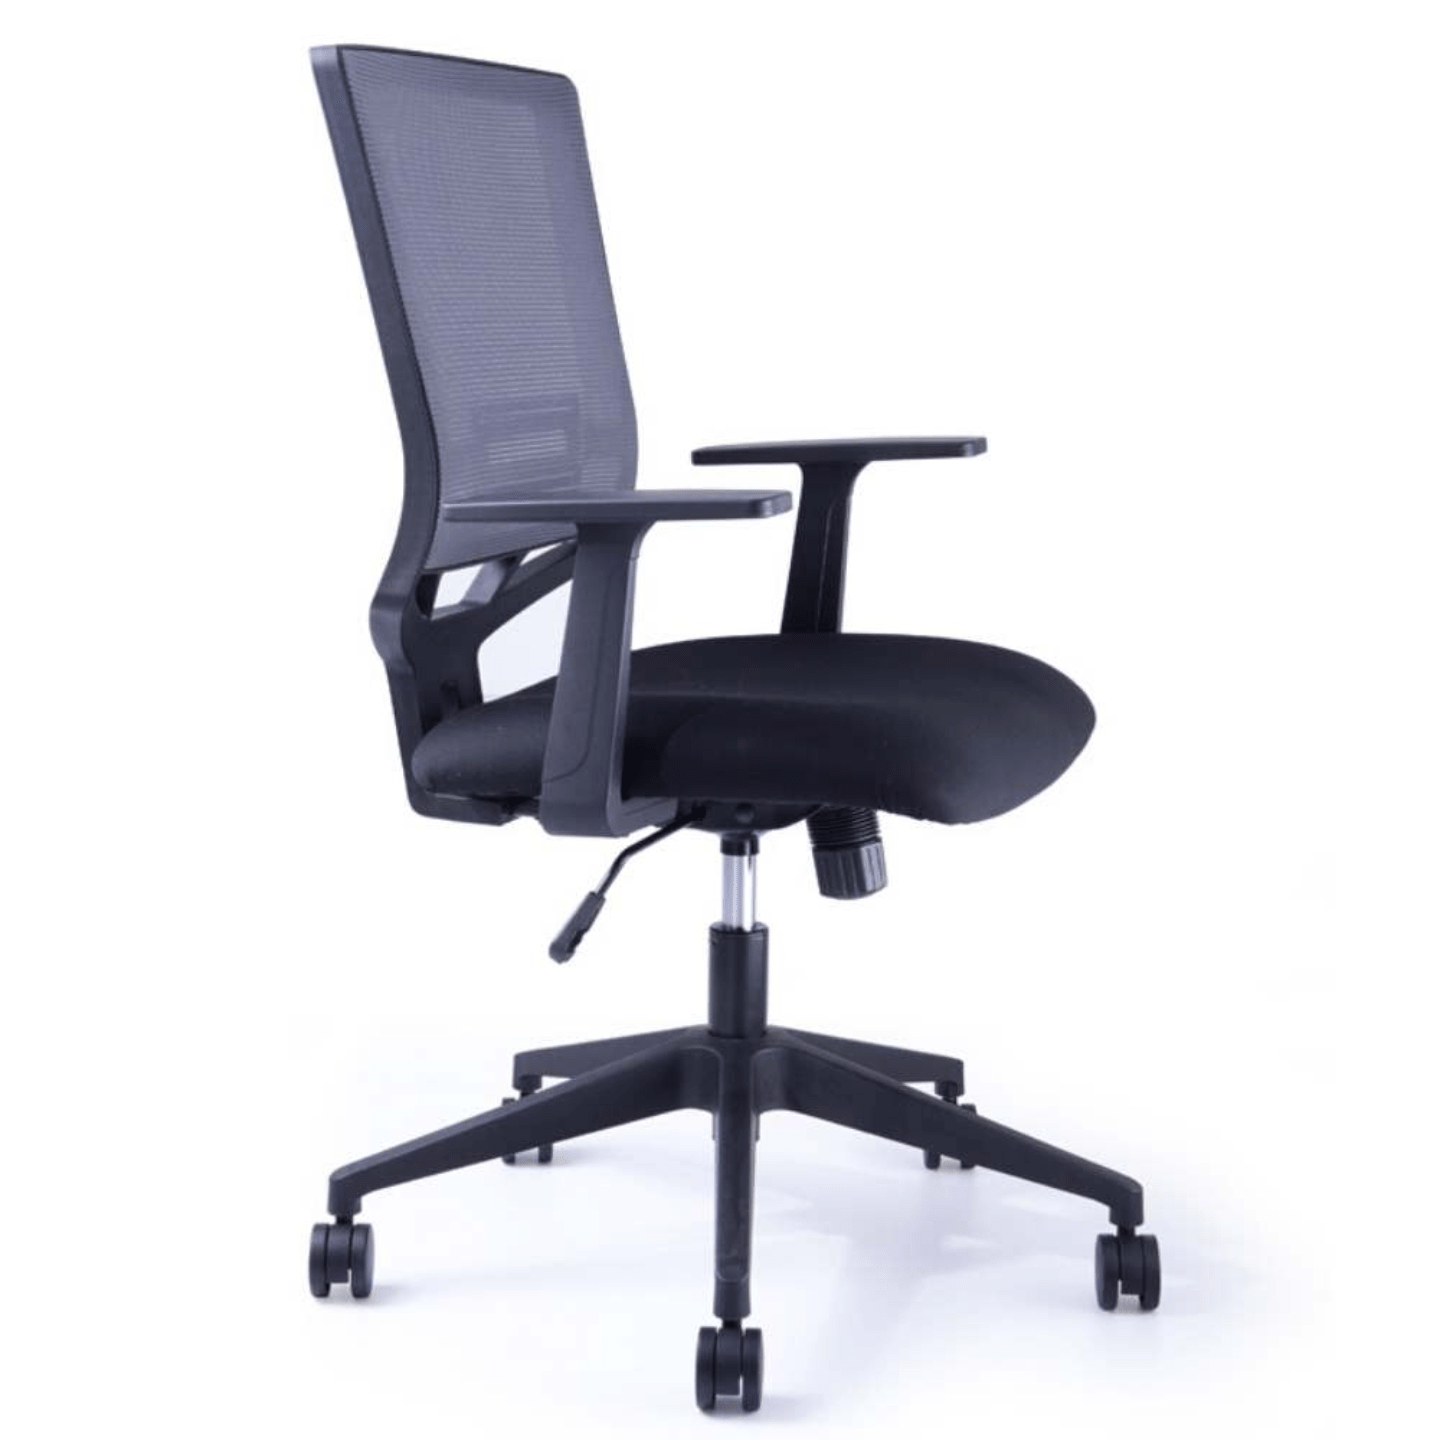 Home Office Chair LOOP  Ergonomic Chair  Computer Chair  Executive Chair